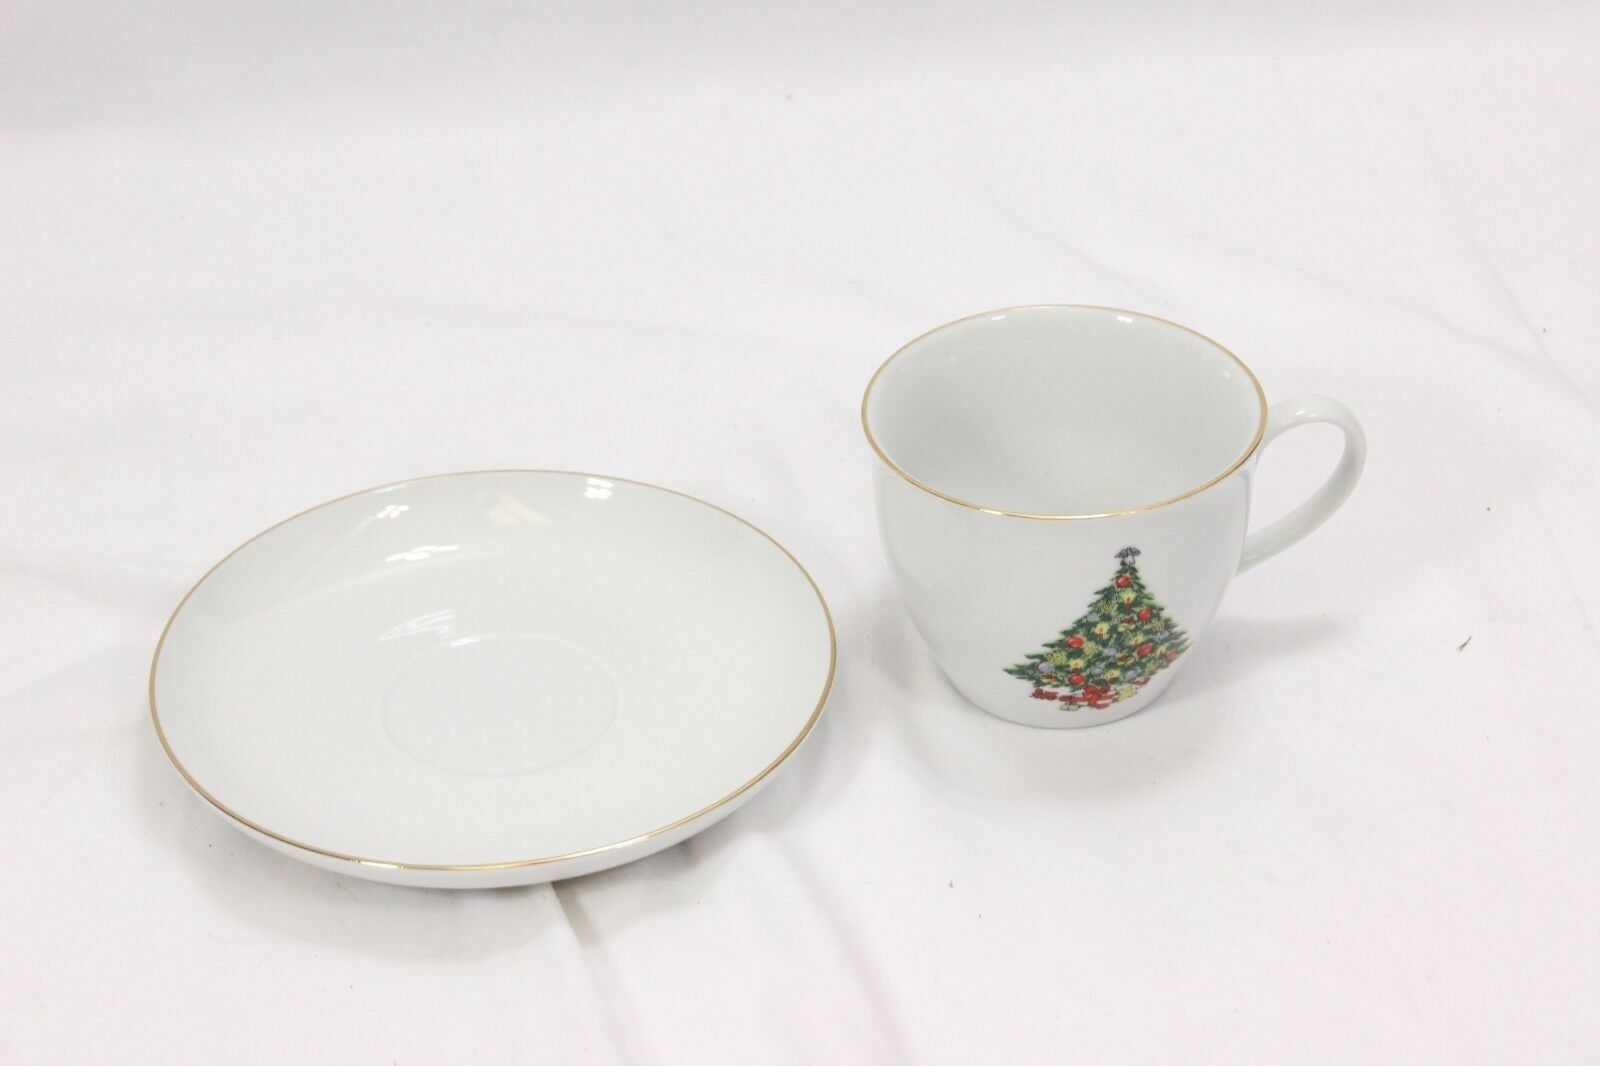 Jamestown Xmas Treasure Bowls Cups Saucers Lot of 12 image 4